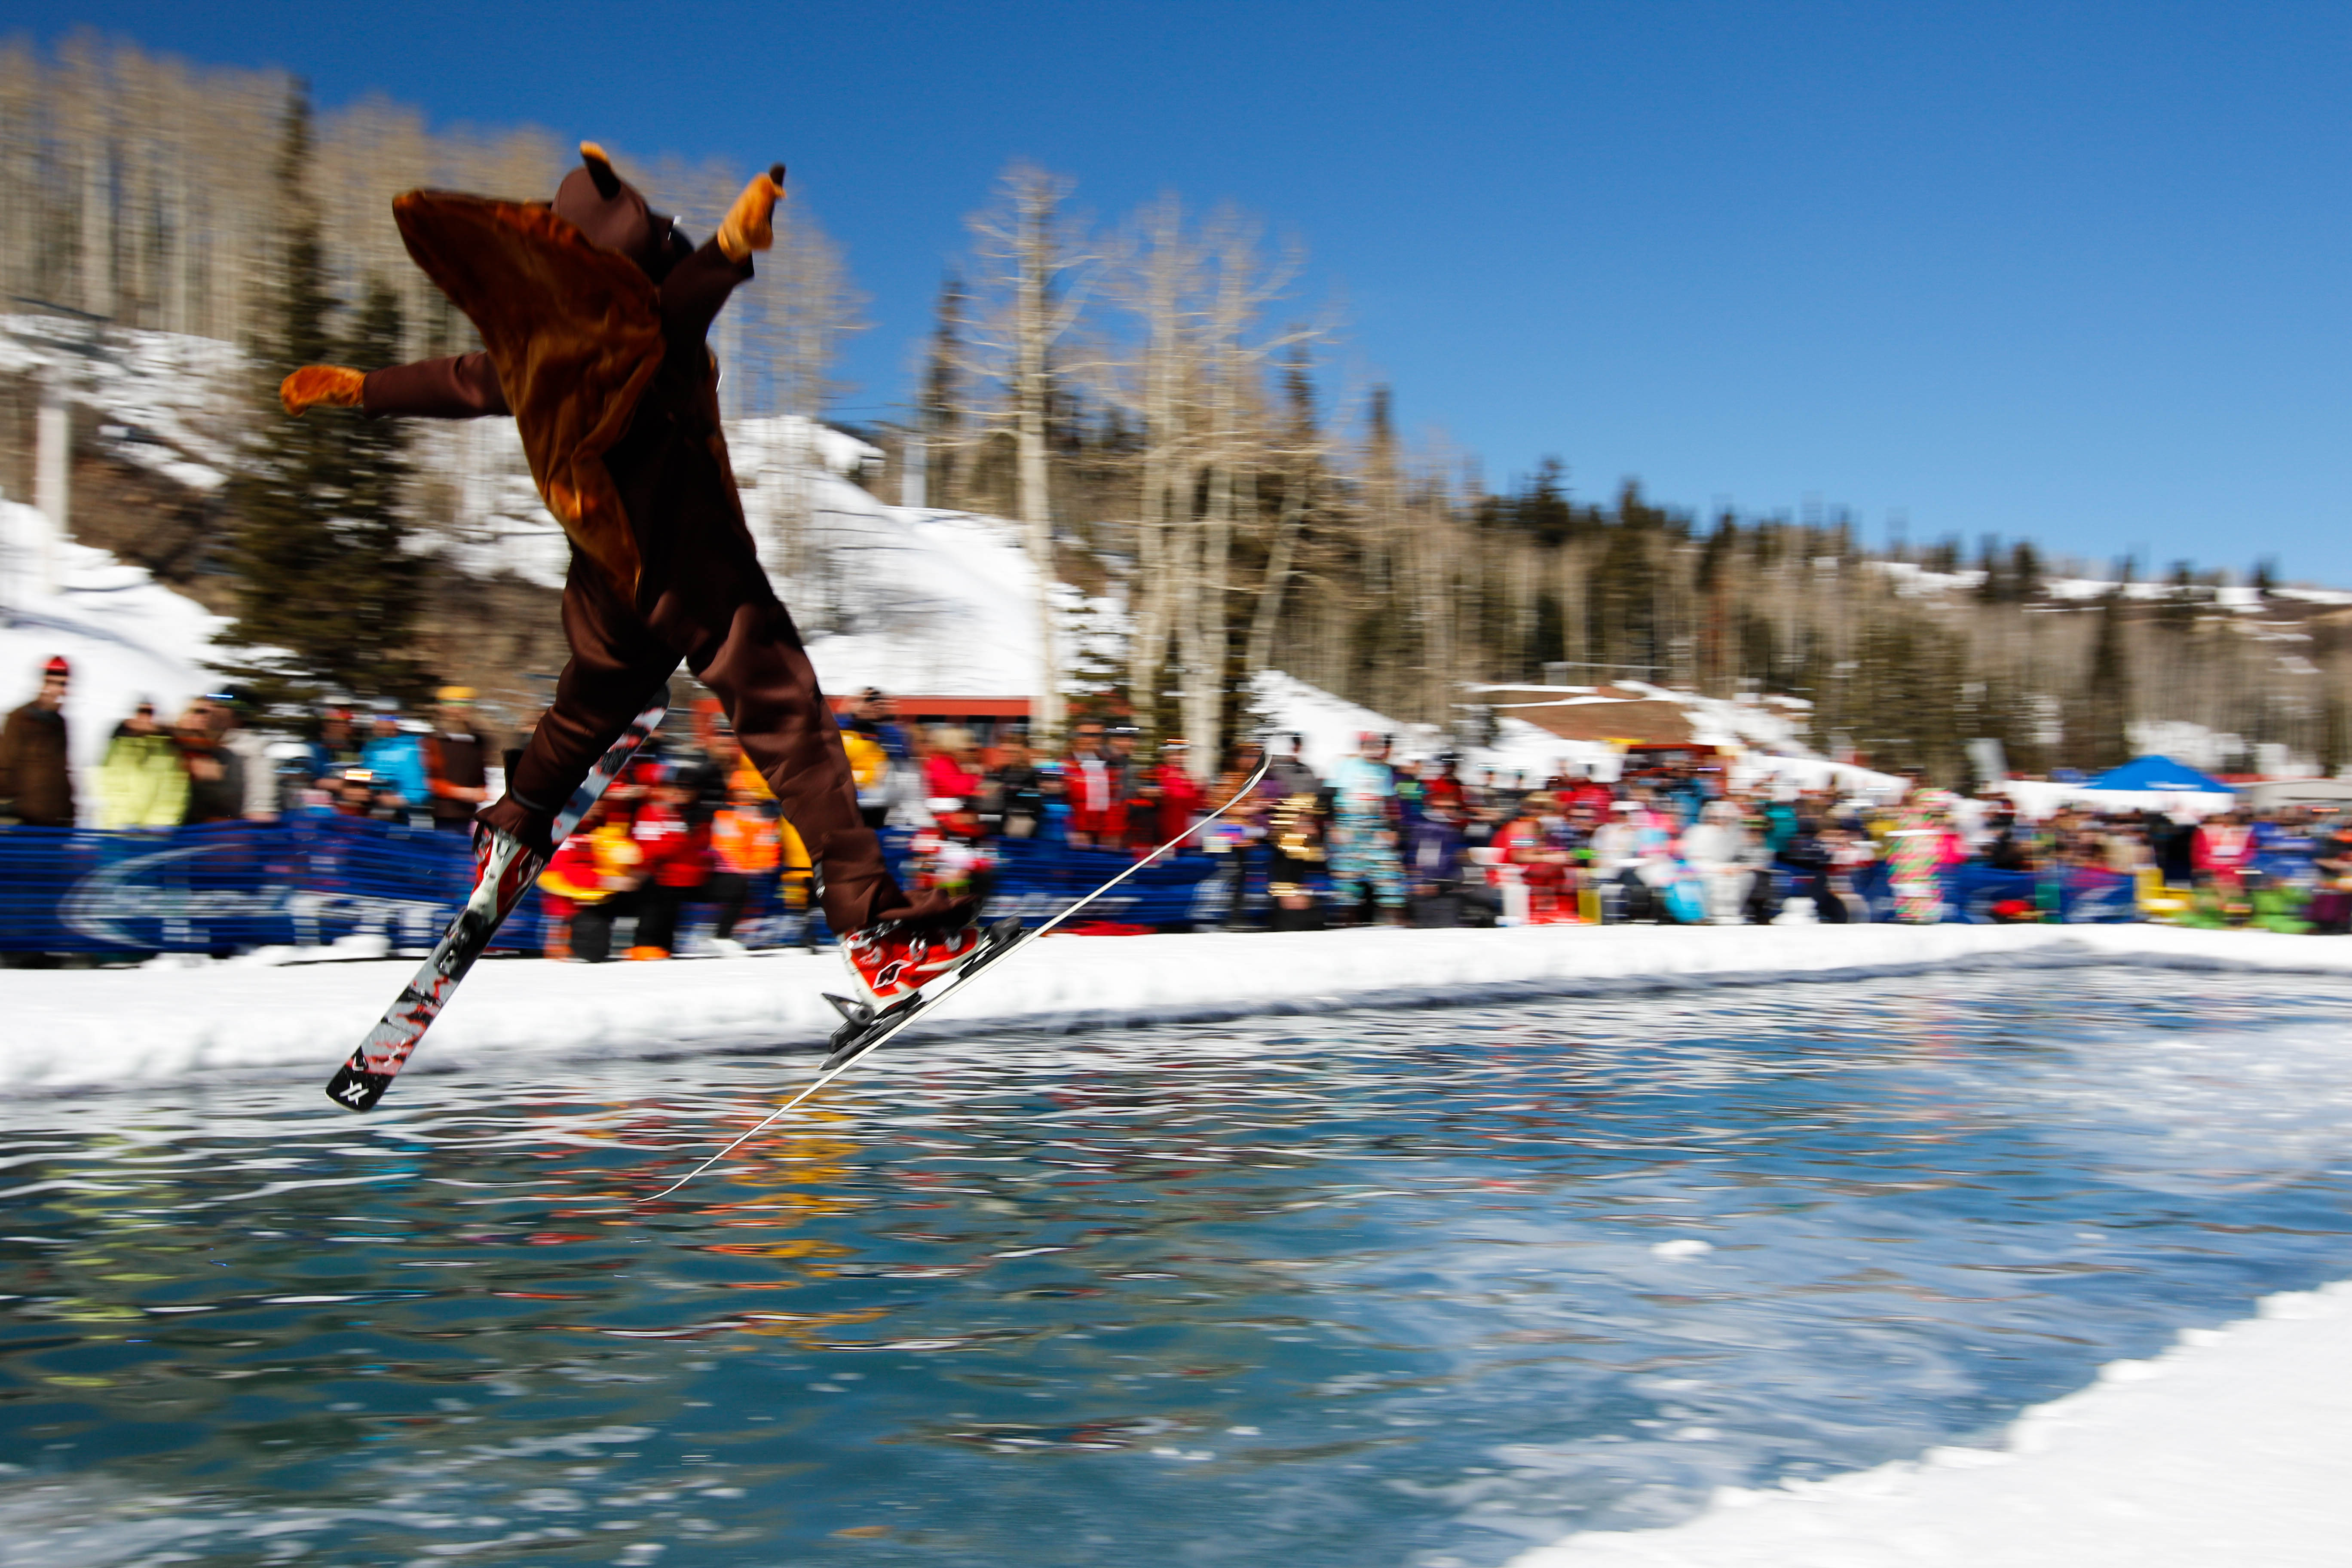 utah spring skiing guide (and closing dates) | outdoor sports guide